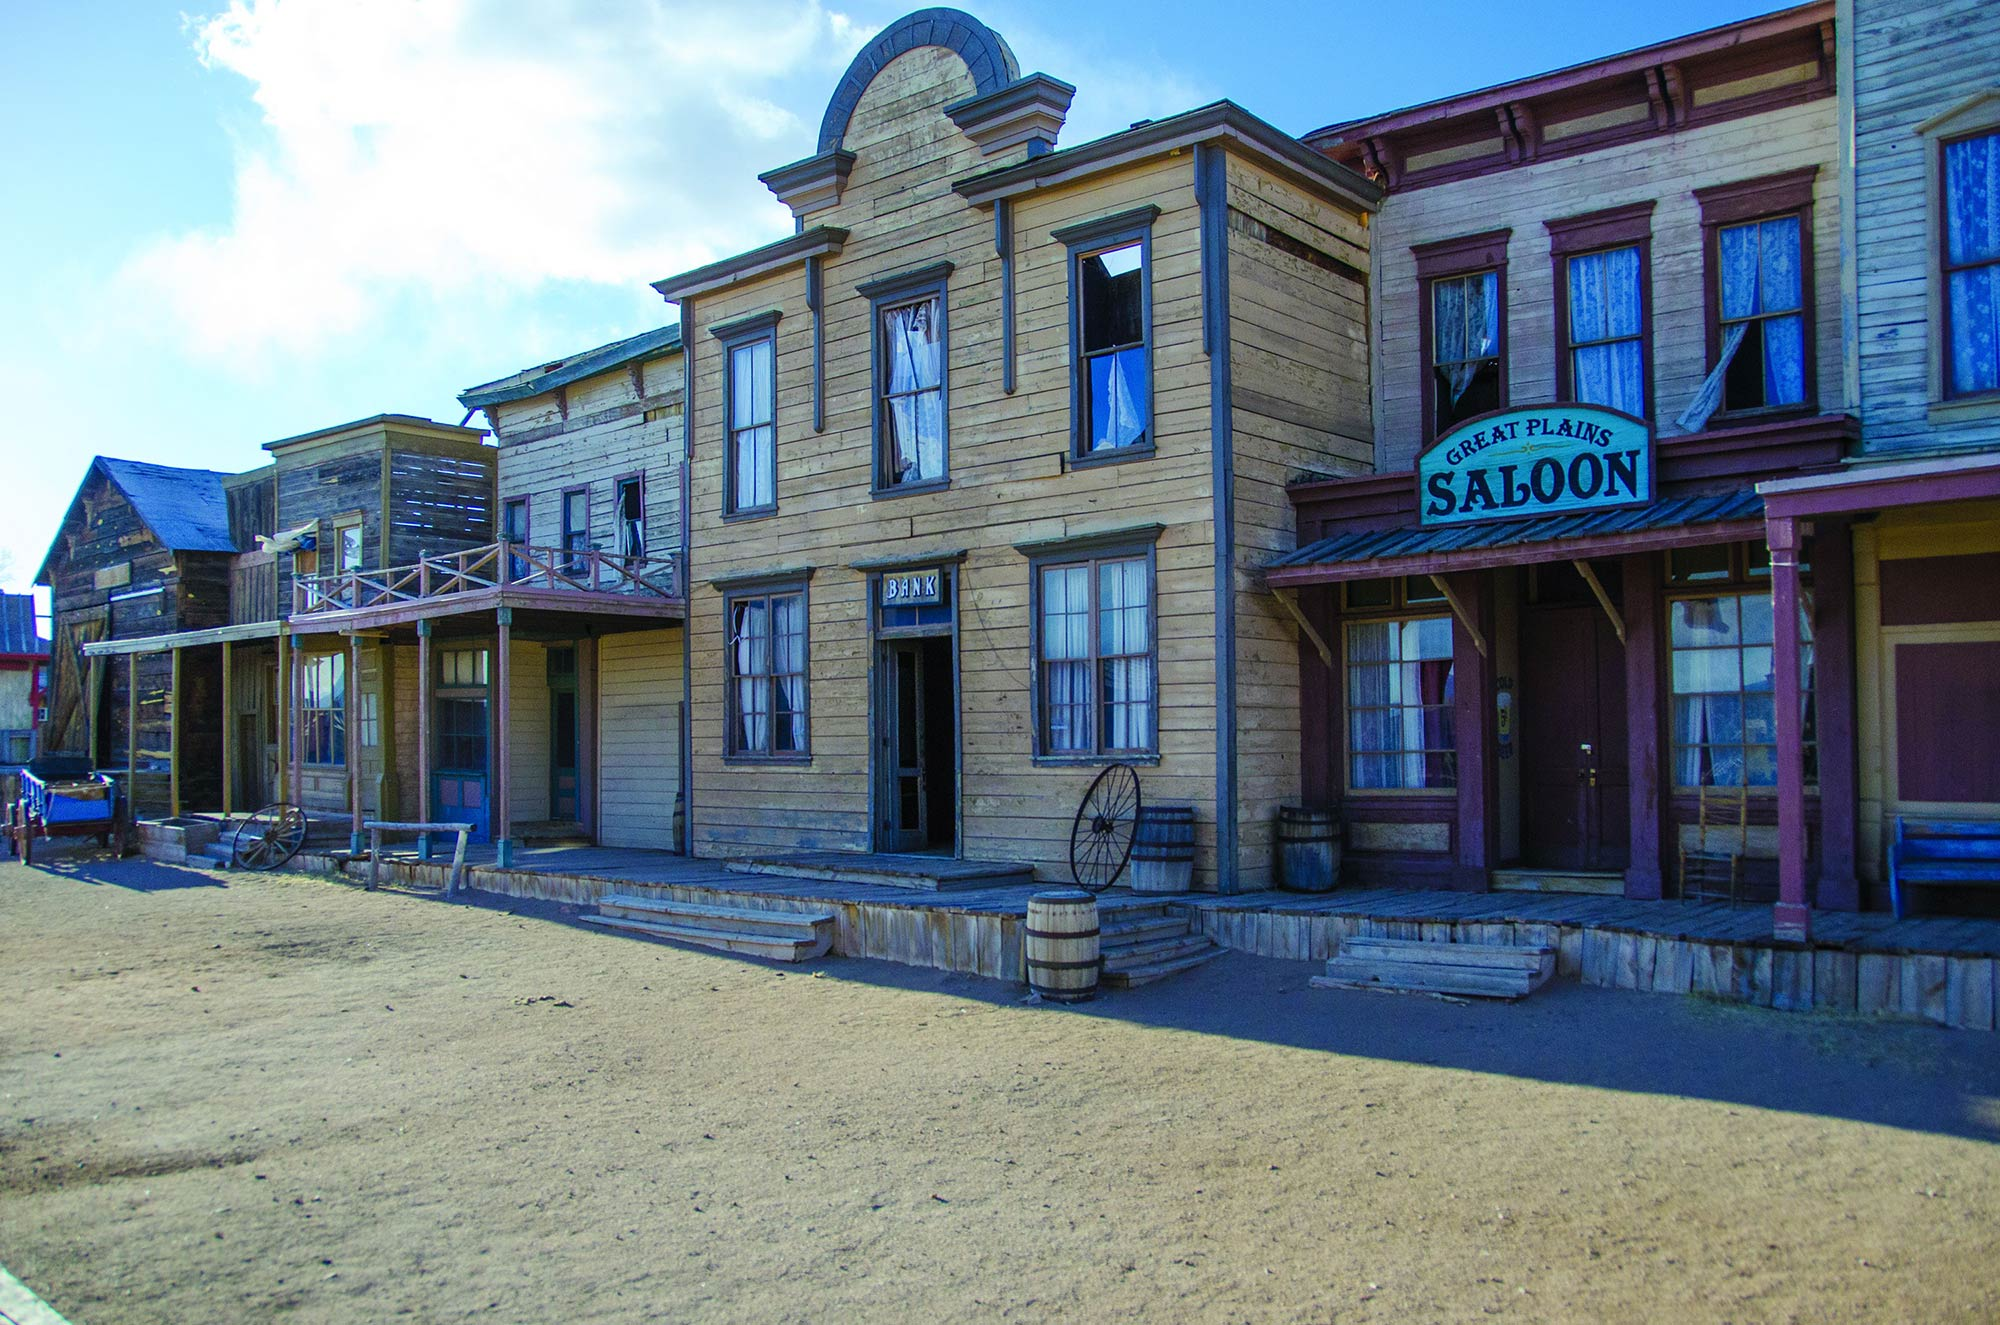 3 10 To Yuma Movie